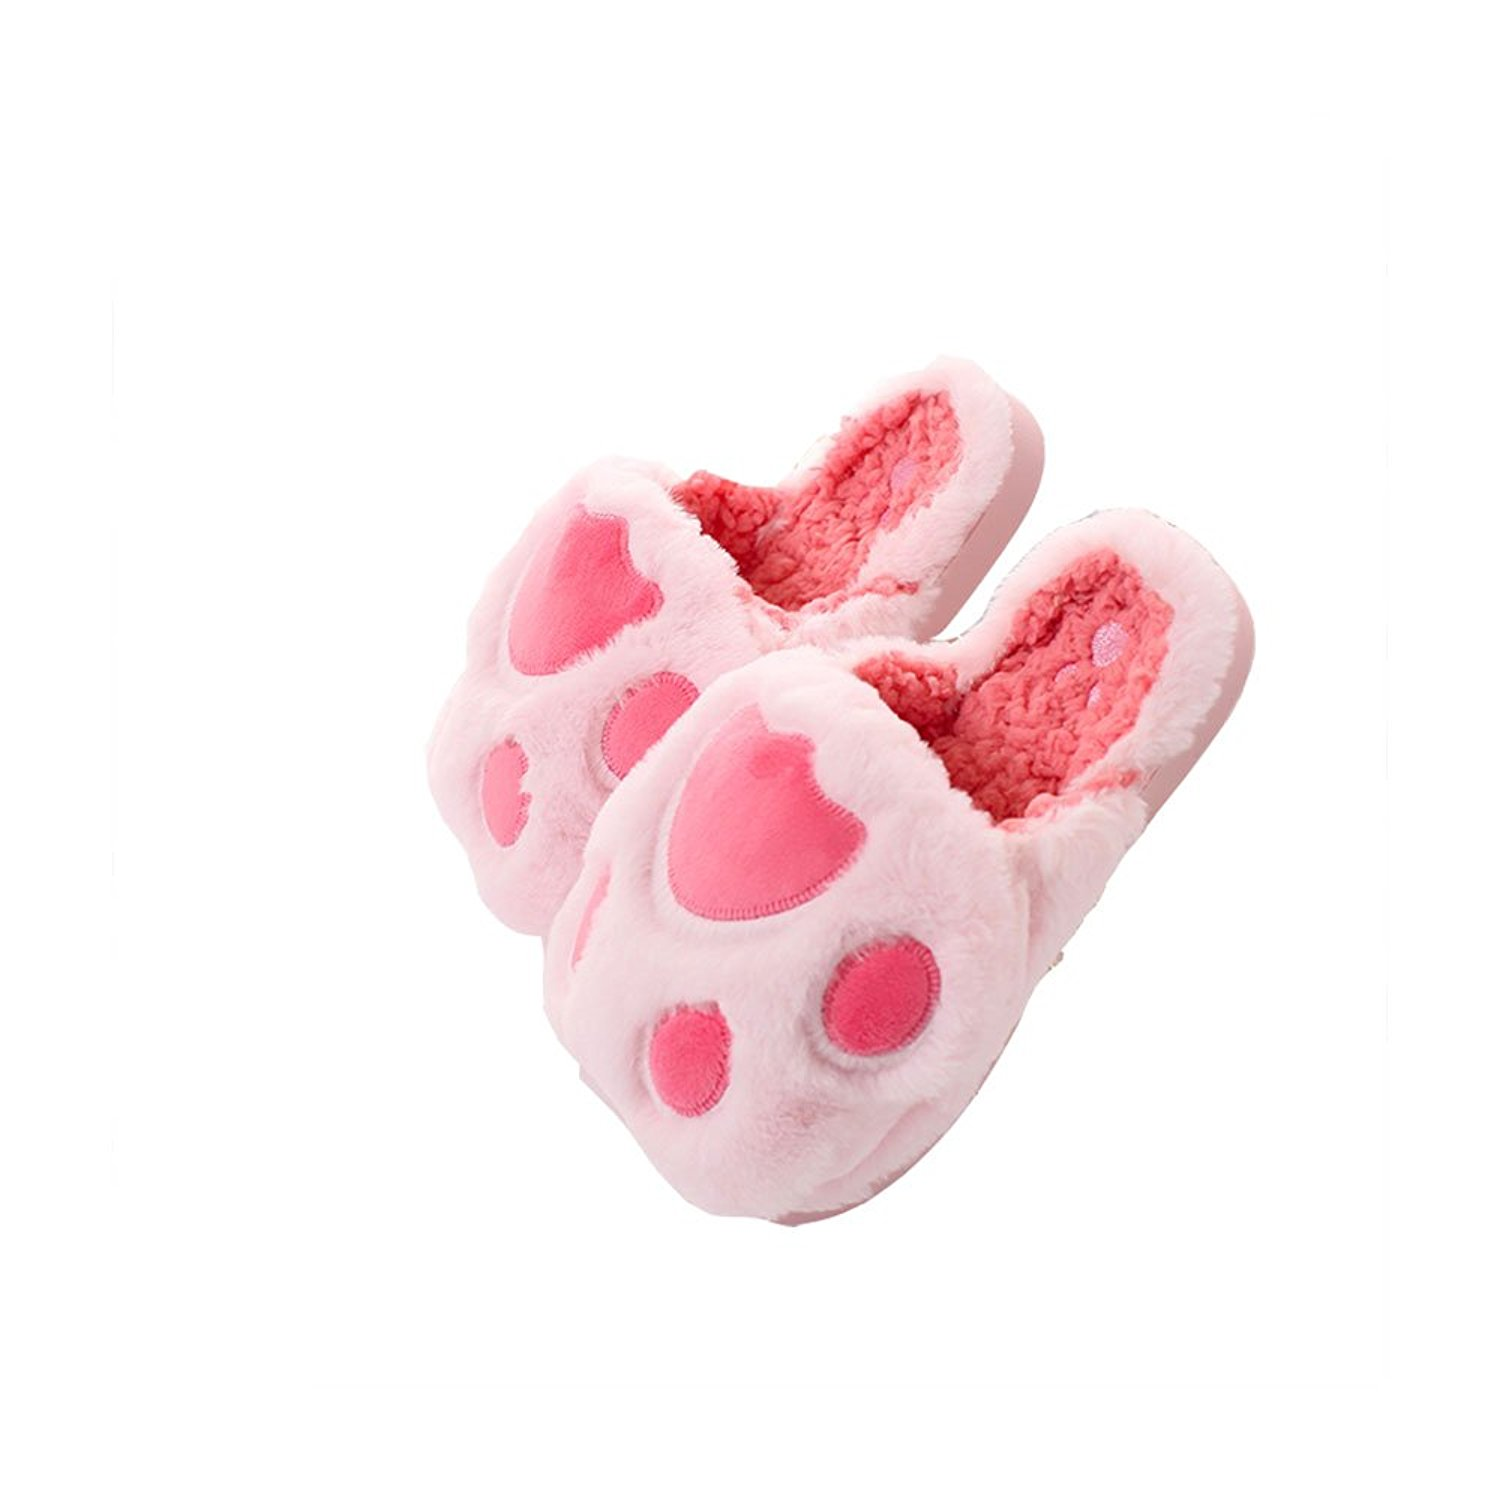 Cartoon Creative Bubble PAW Claw Animal Slippers Cute Lovely Pink Fuzzy Home Plush Slippers Cozy Fun Plush Indoor Shoe Soft Winter Clog For Women Warm Anti-Slip House Slippers Memory Foam Sole